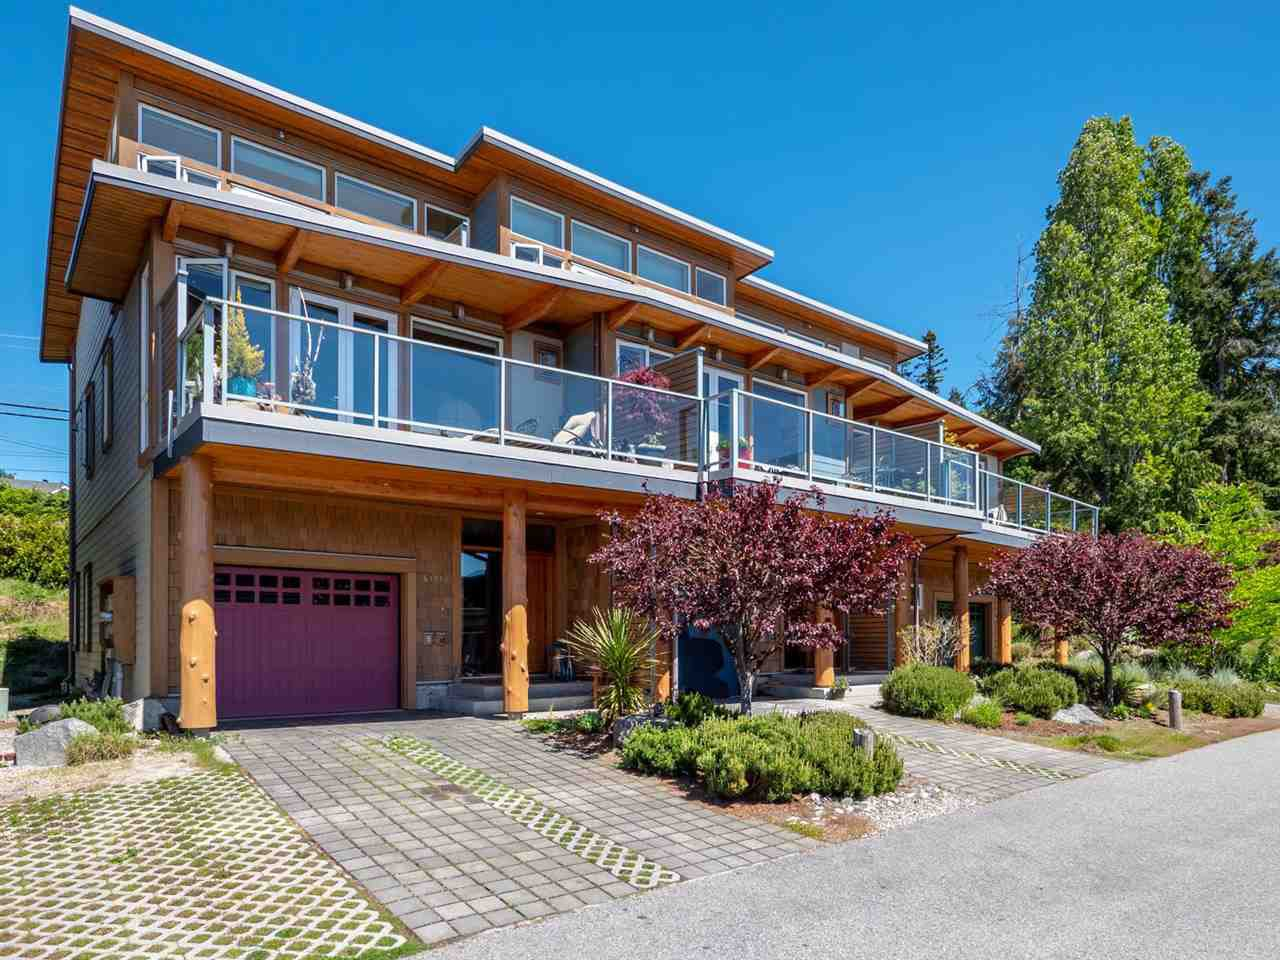 """Main Photo: 6494 EMBER Place in Sechelt: Sechelt District Townhouse for sale in """"The Second Wave -Wakefield Beach"""" (Sunshine Coast)  : MLS®# R2267735"""